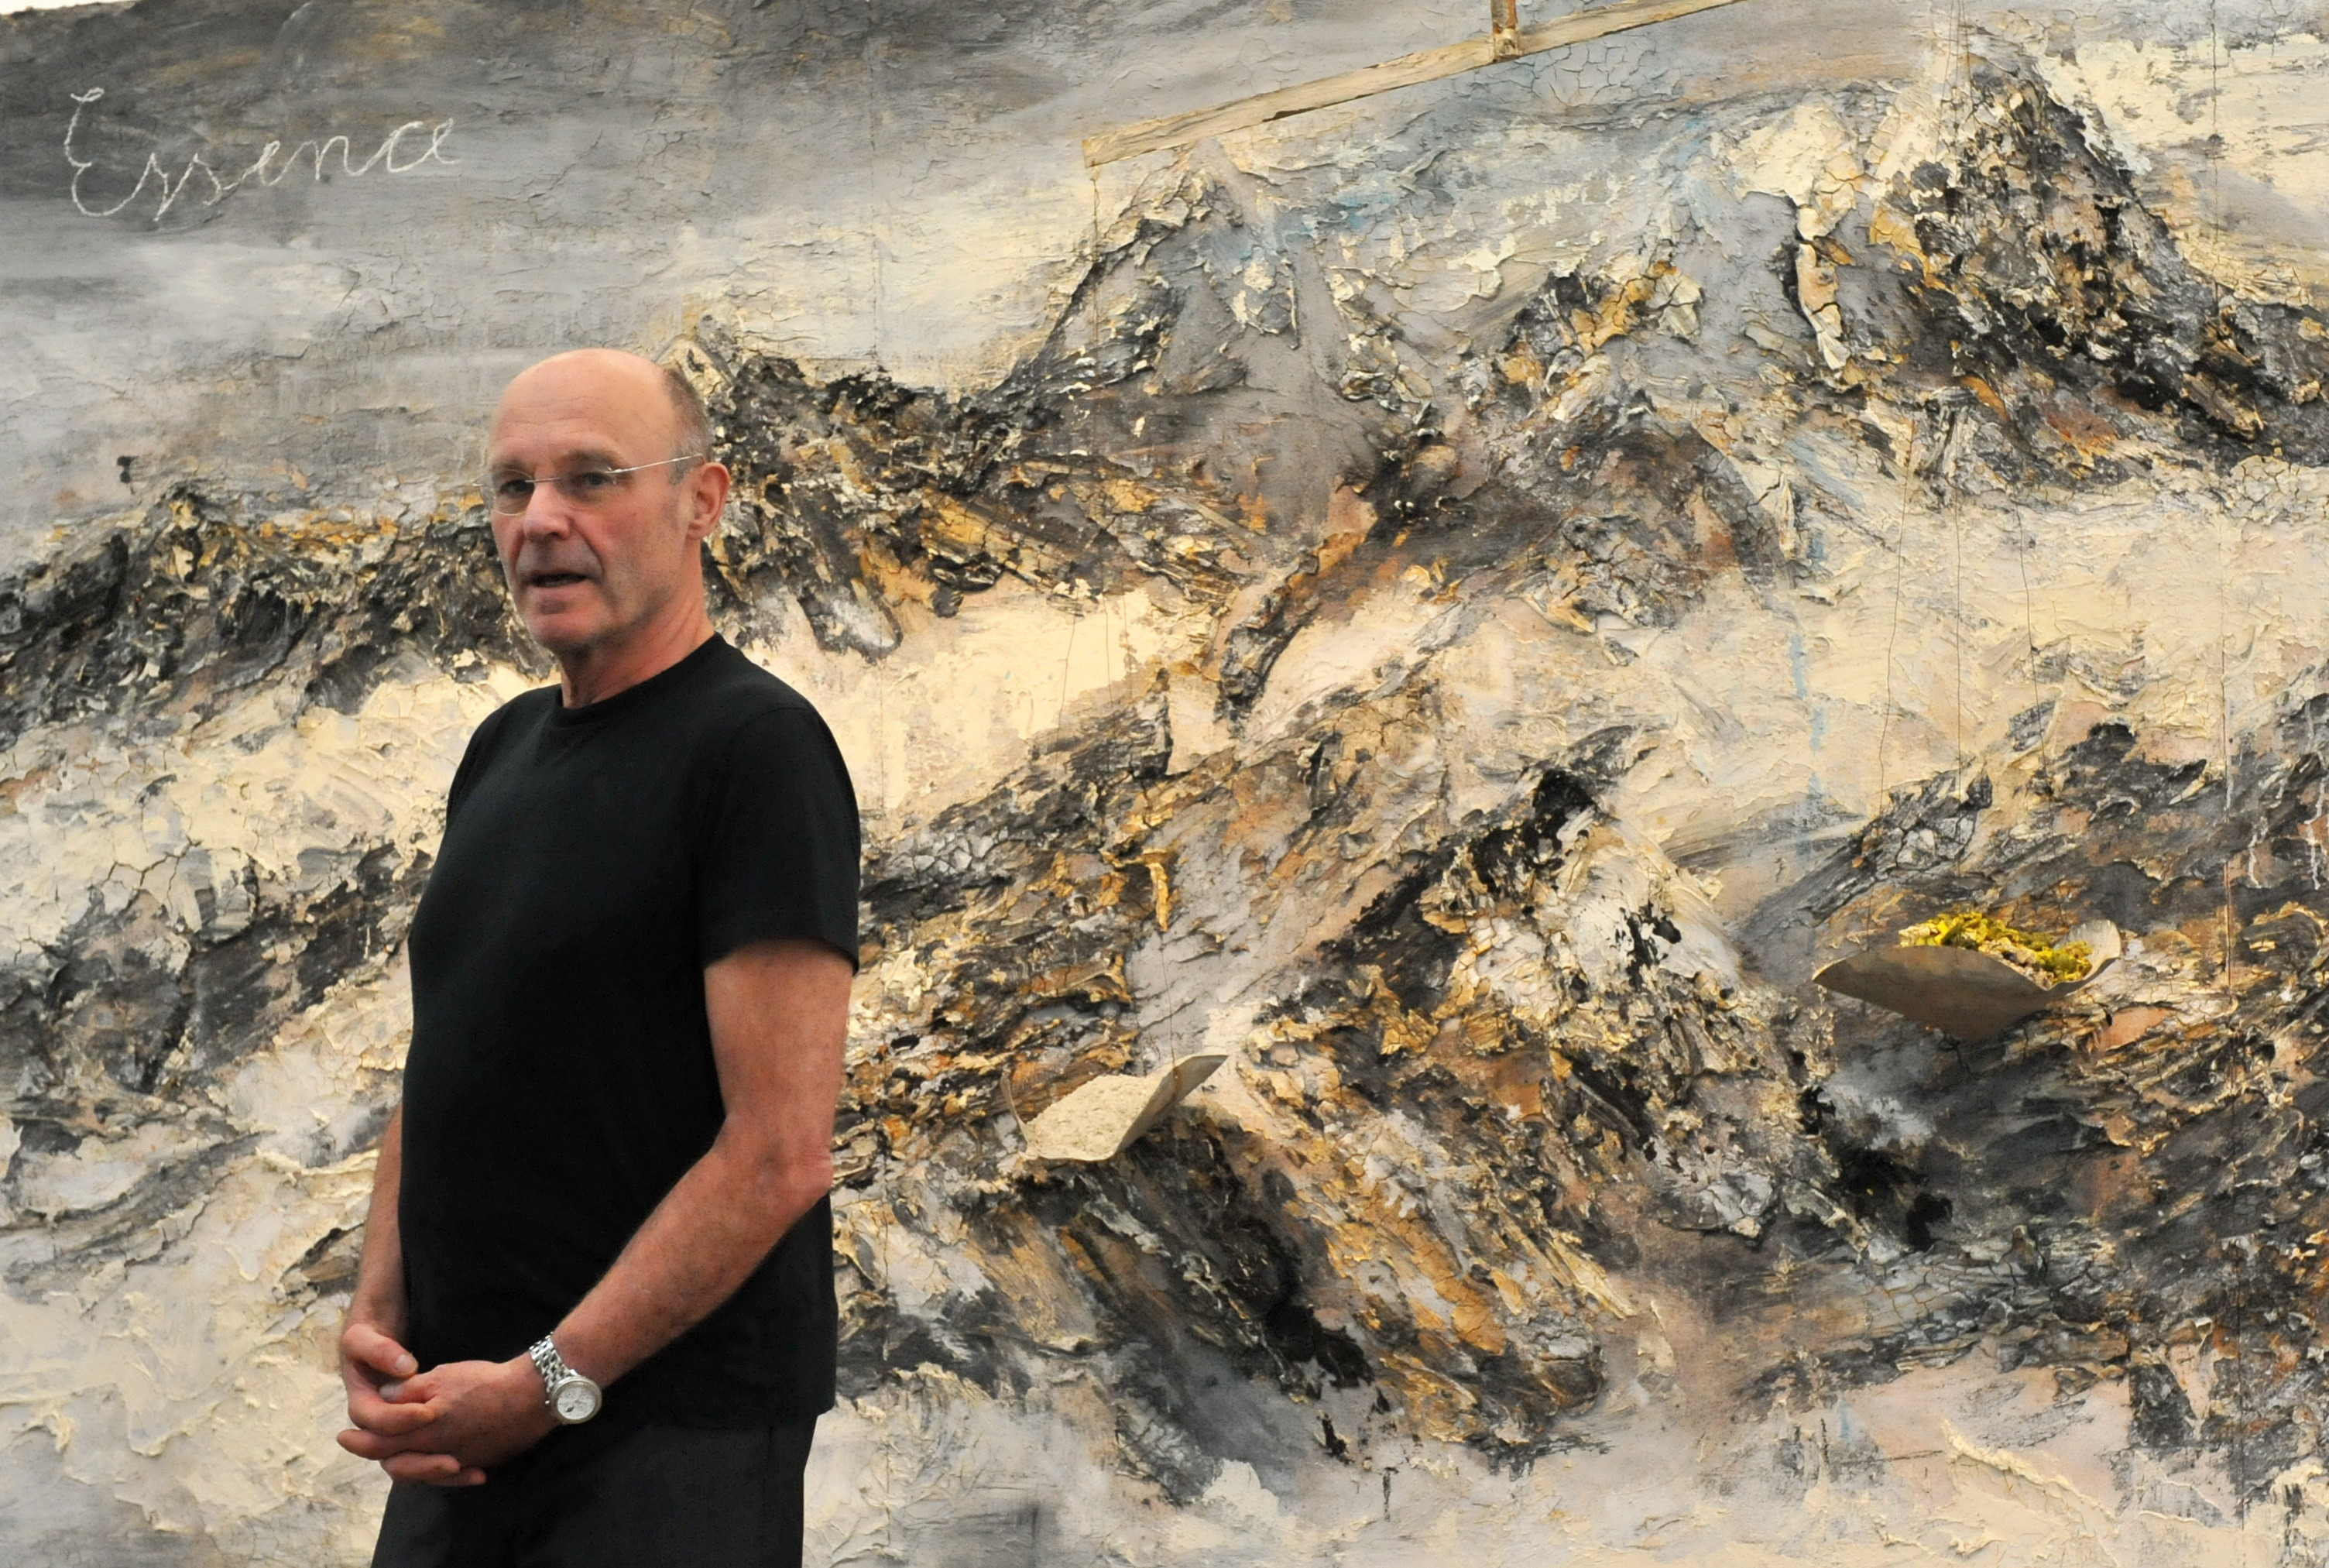 A Group of Thieves Bungled a Break-In at Anselm Kiefer's Studio When Trying to Steal One of His Sculptures